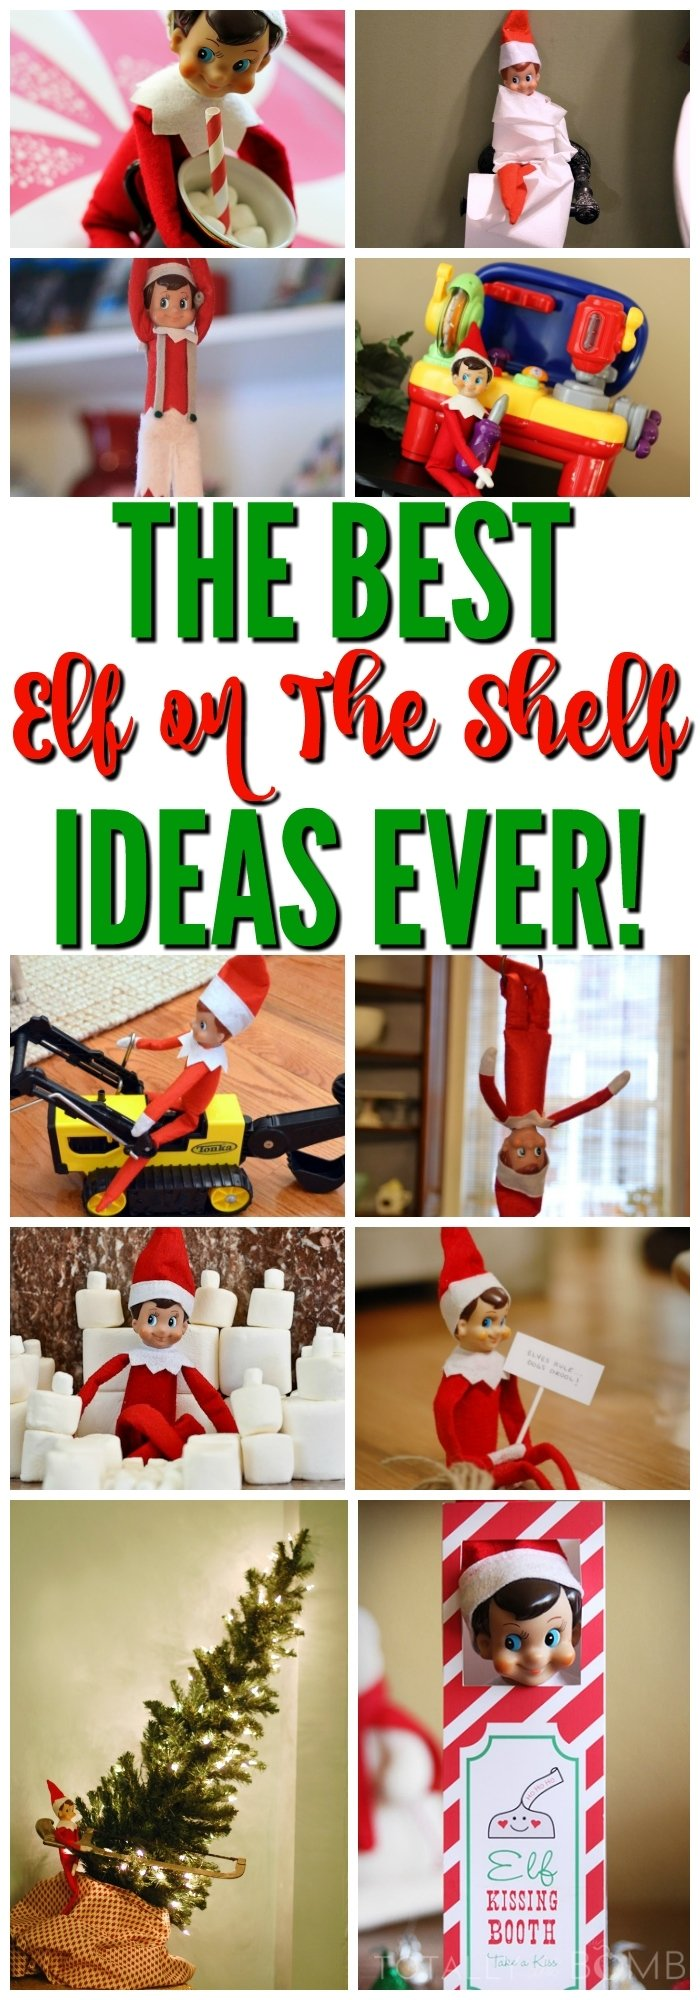 10 Unique Elf On The Self Ideas 30 totally genius and easy elf on the shelf ideas 2 2021